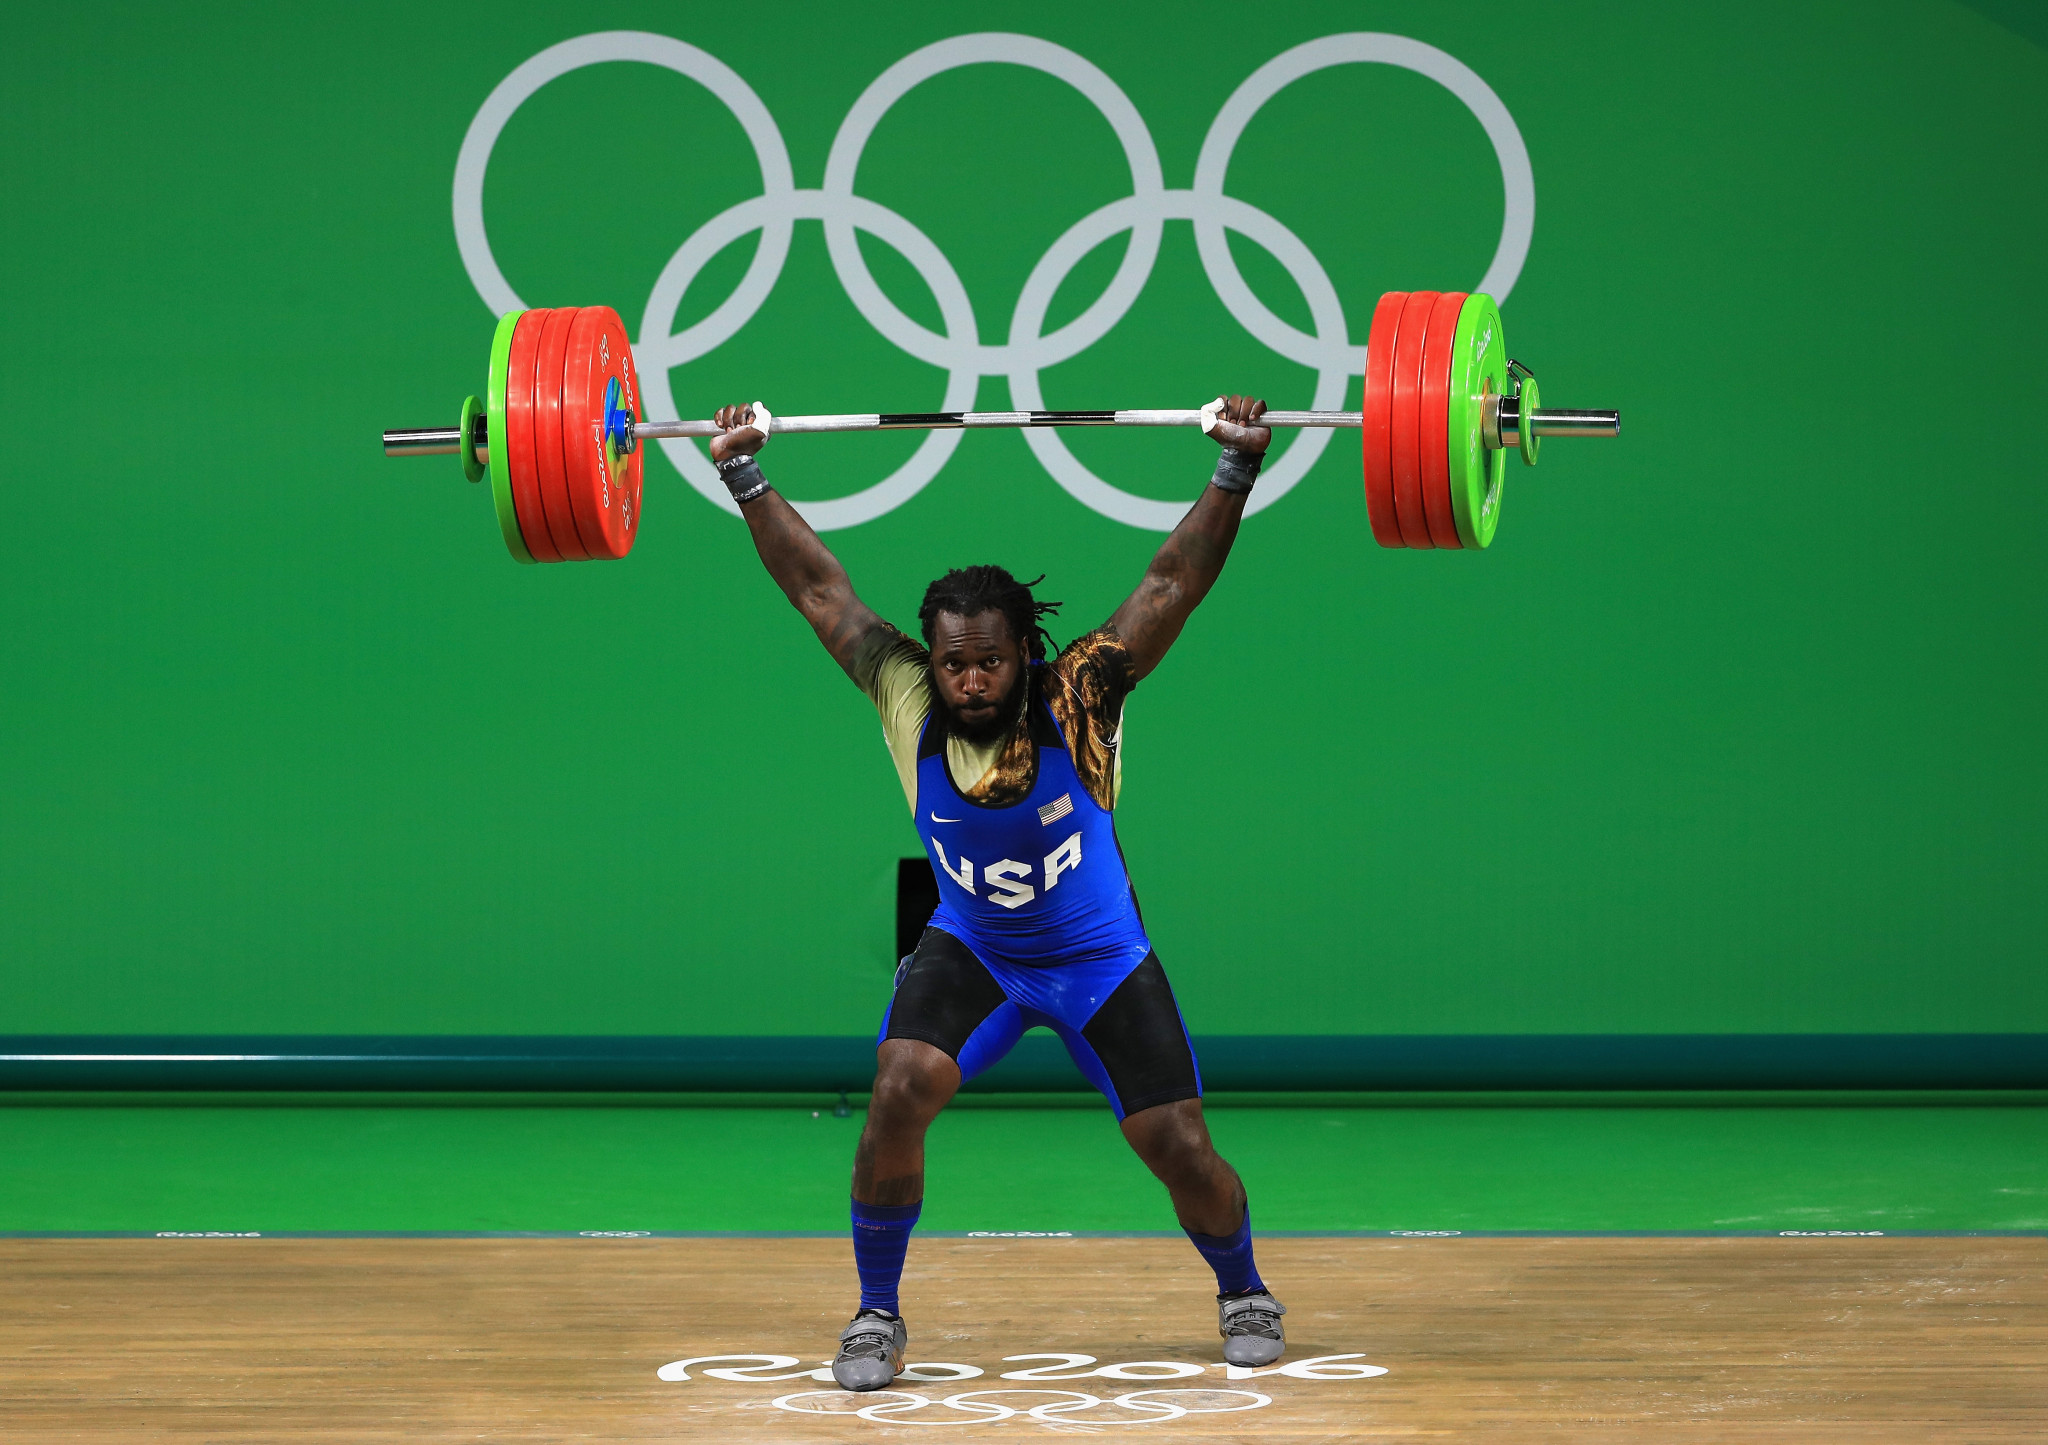 Colombia's Arboleda wins women's 69kg overall gold at weightlifting worlds